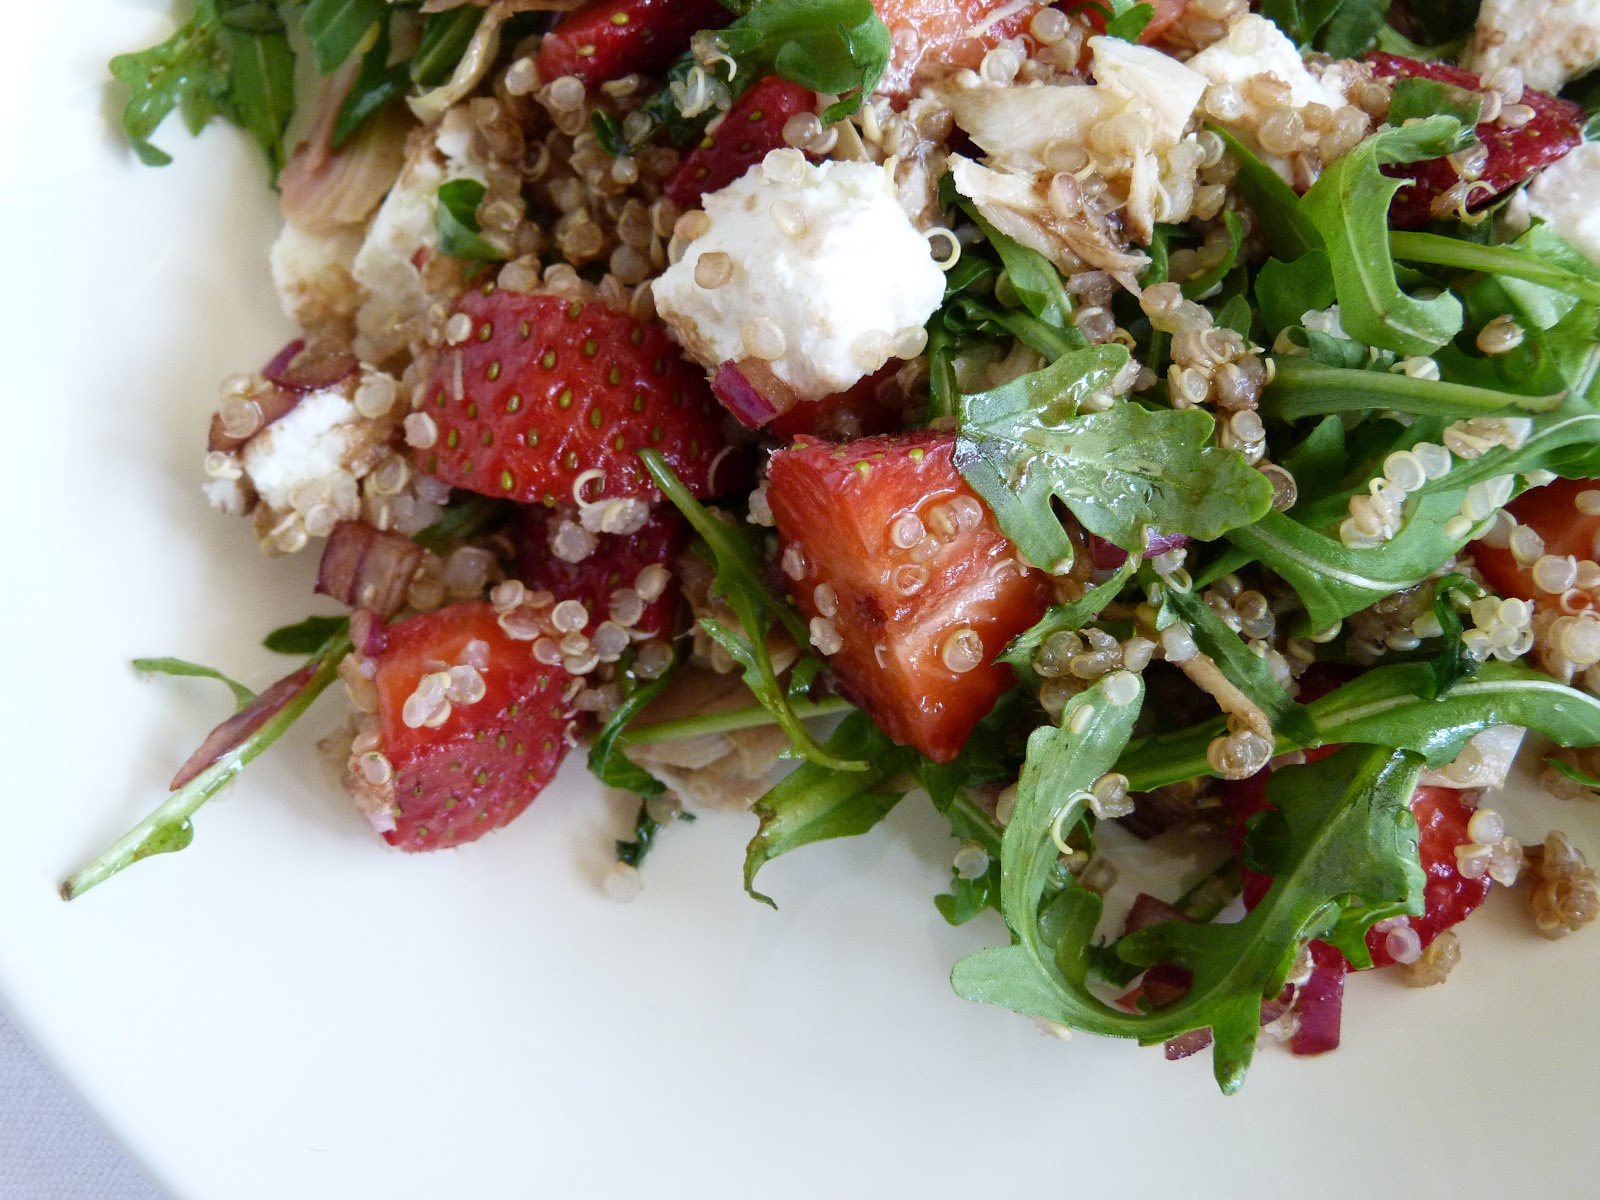 ... Quinoa, Strawberry, Arugula, Goatcheese, and Roasted Chicken Salad